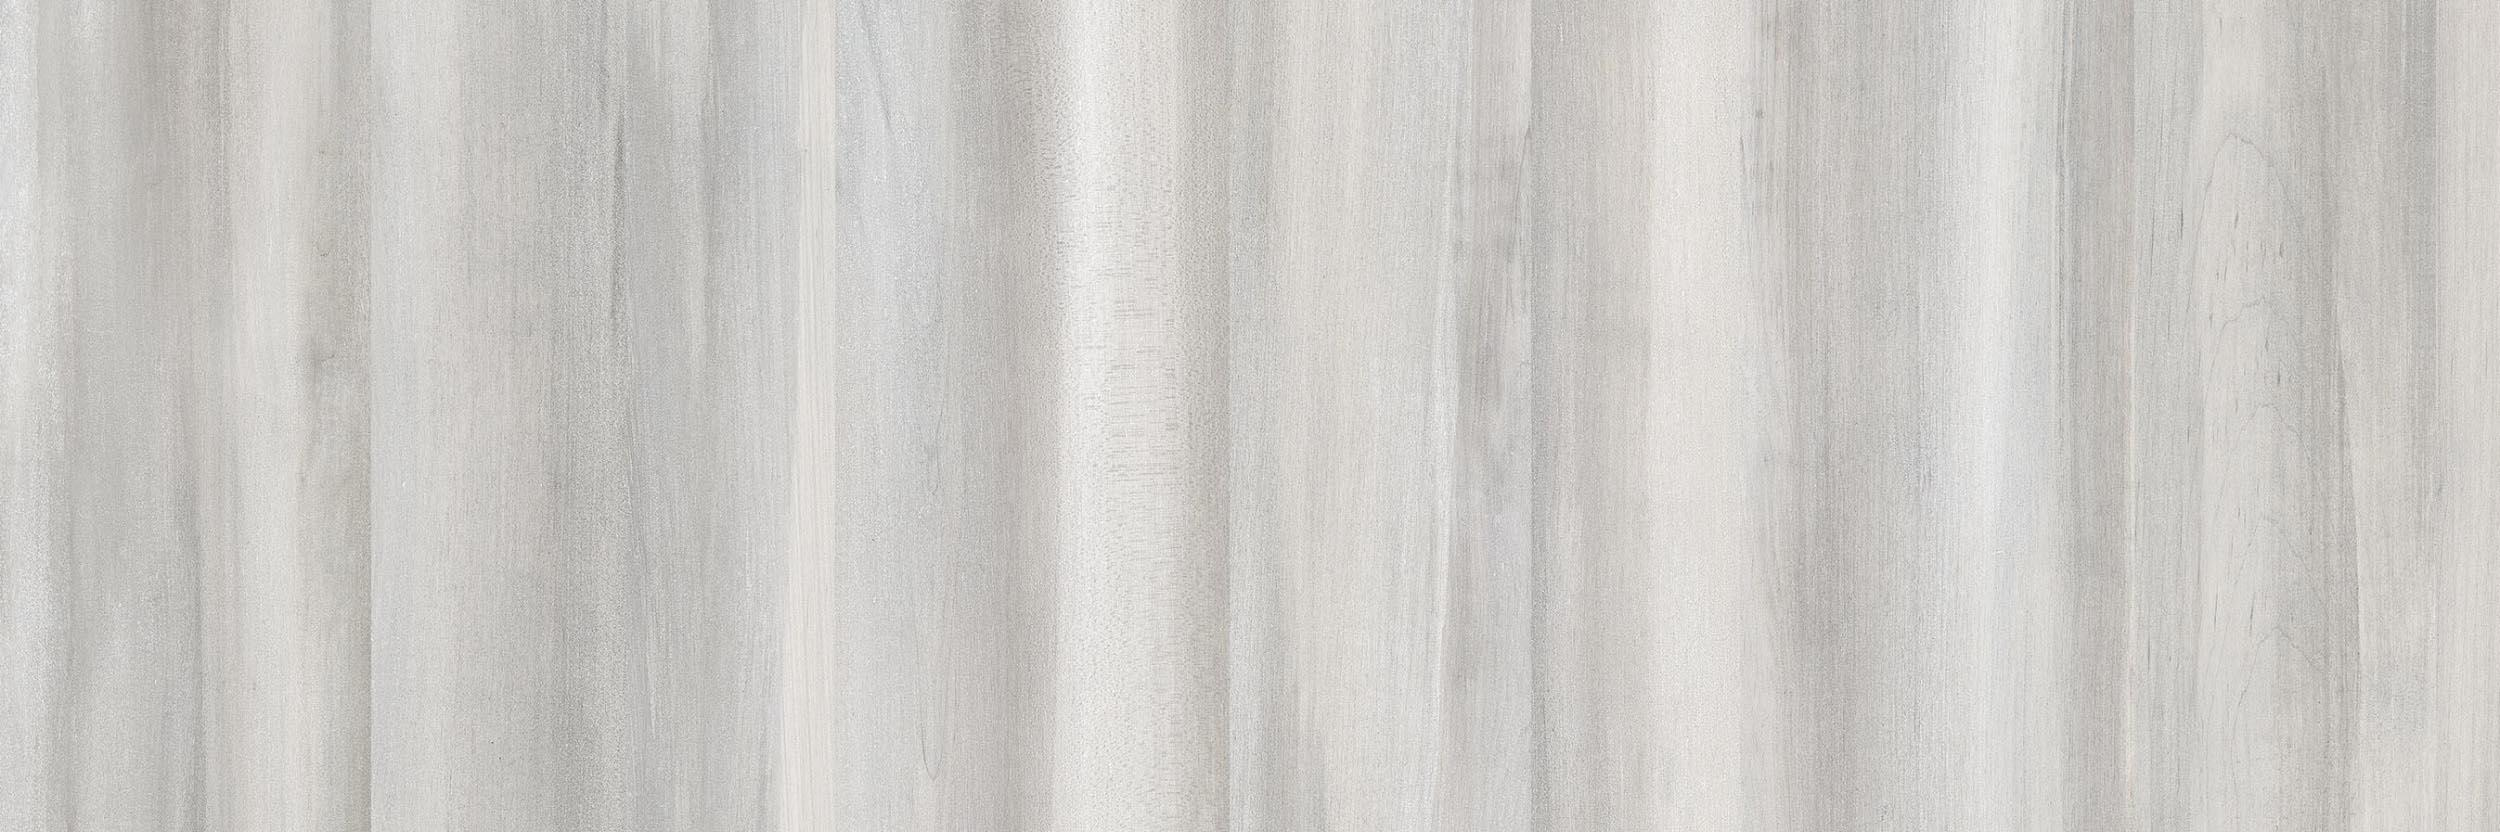 Ribbon Maple Y0782 Laminate Countertops